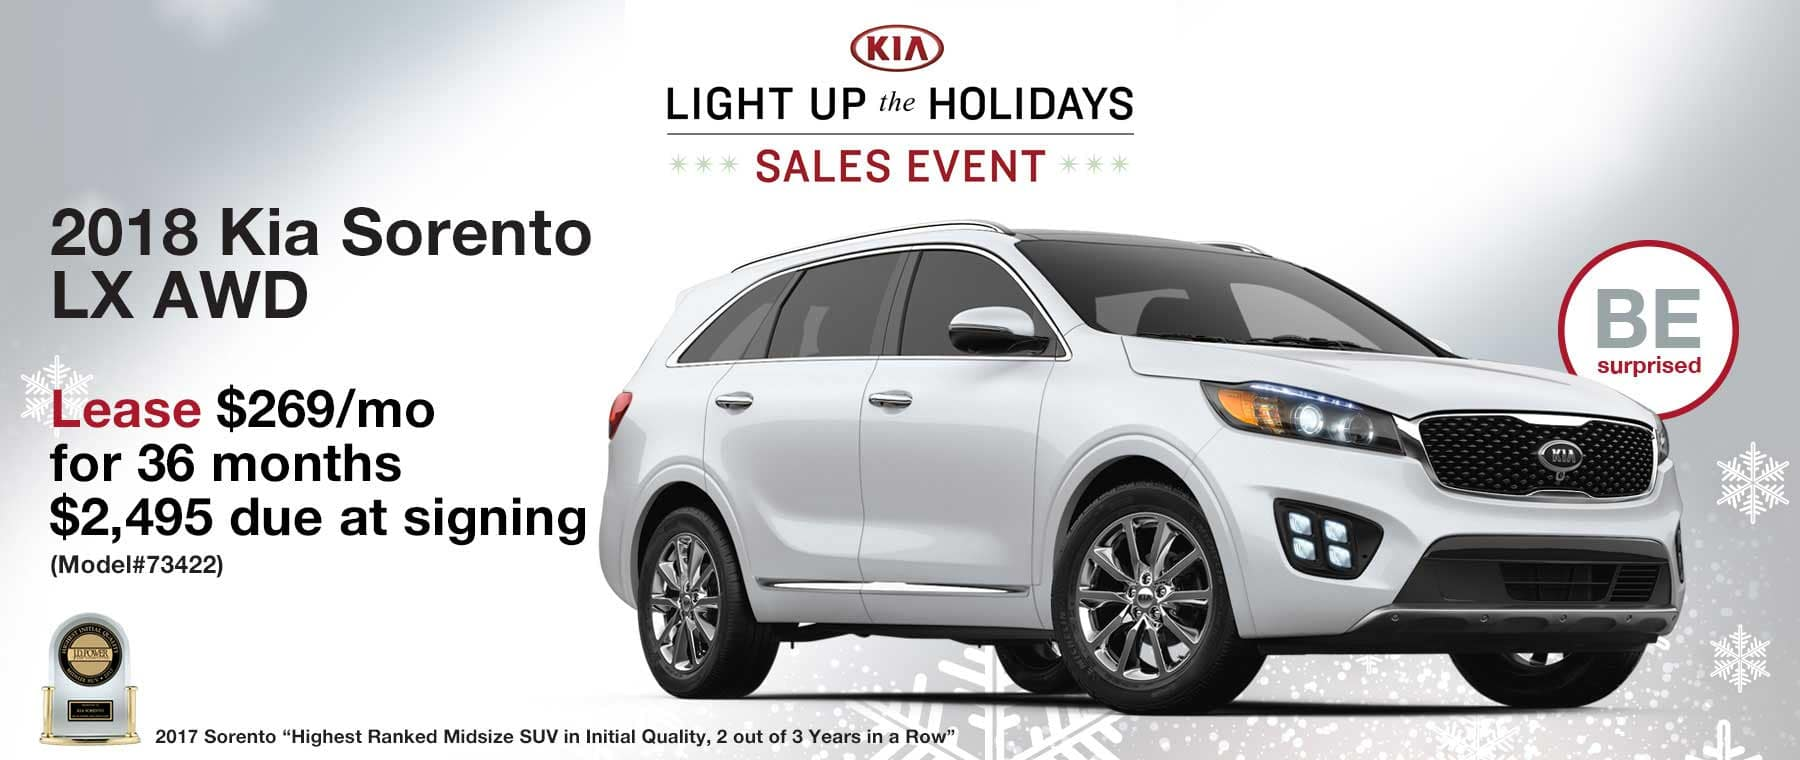 Lease a new 2018 Kia Sorento LX AWD for $269 per month with $2,495 due at signing.